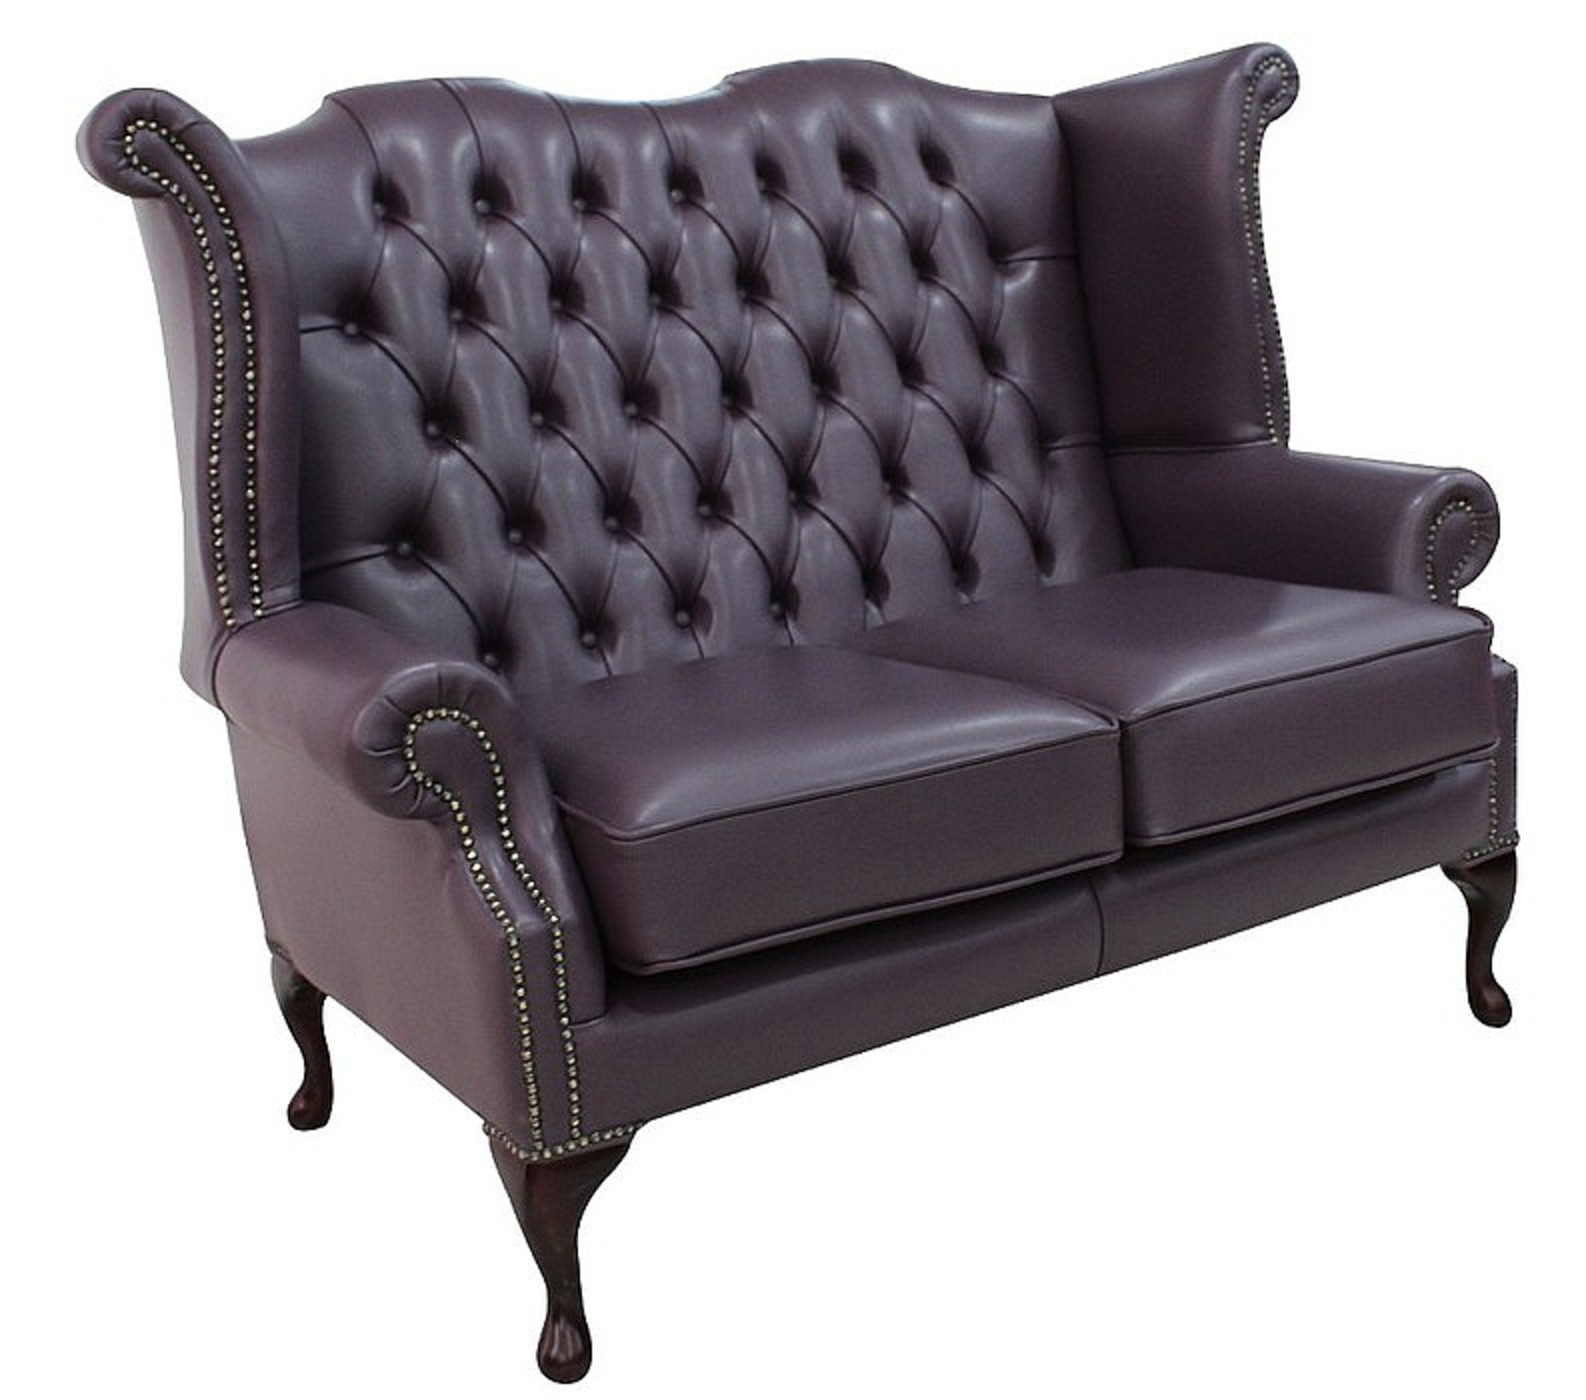 high back chesterfield sofa sleeper with recliner purple 2 seater wing designersofas4u queen anne hemmingway blueberry leather